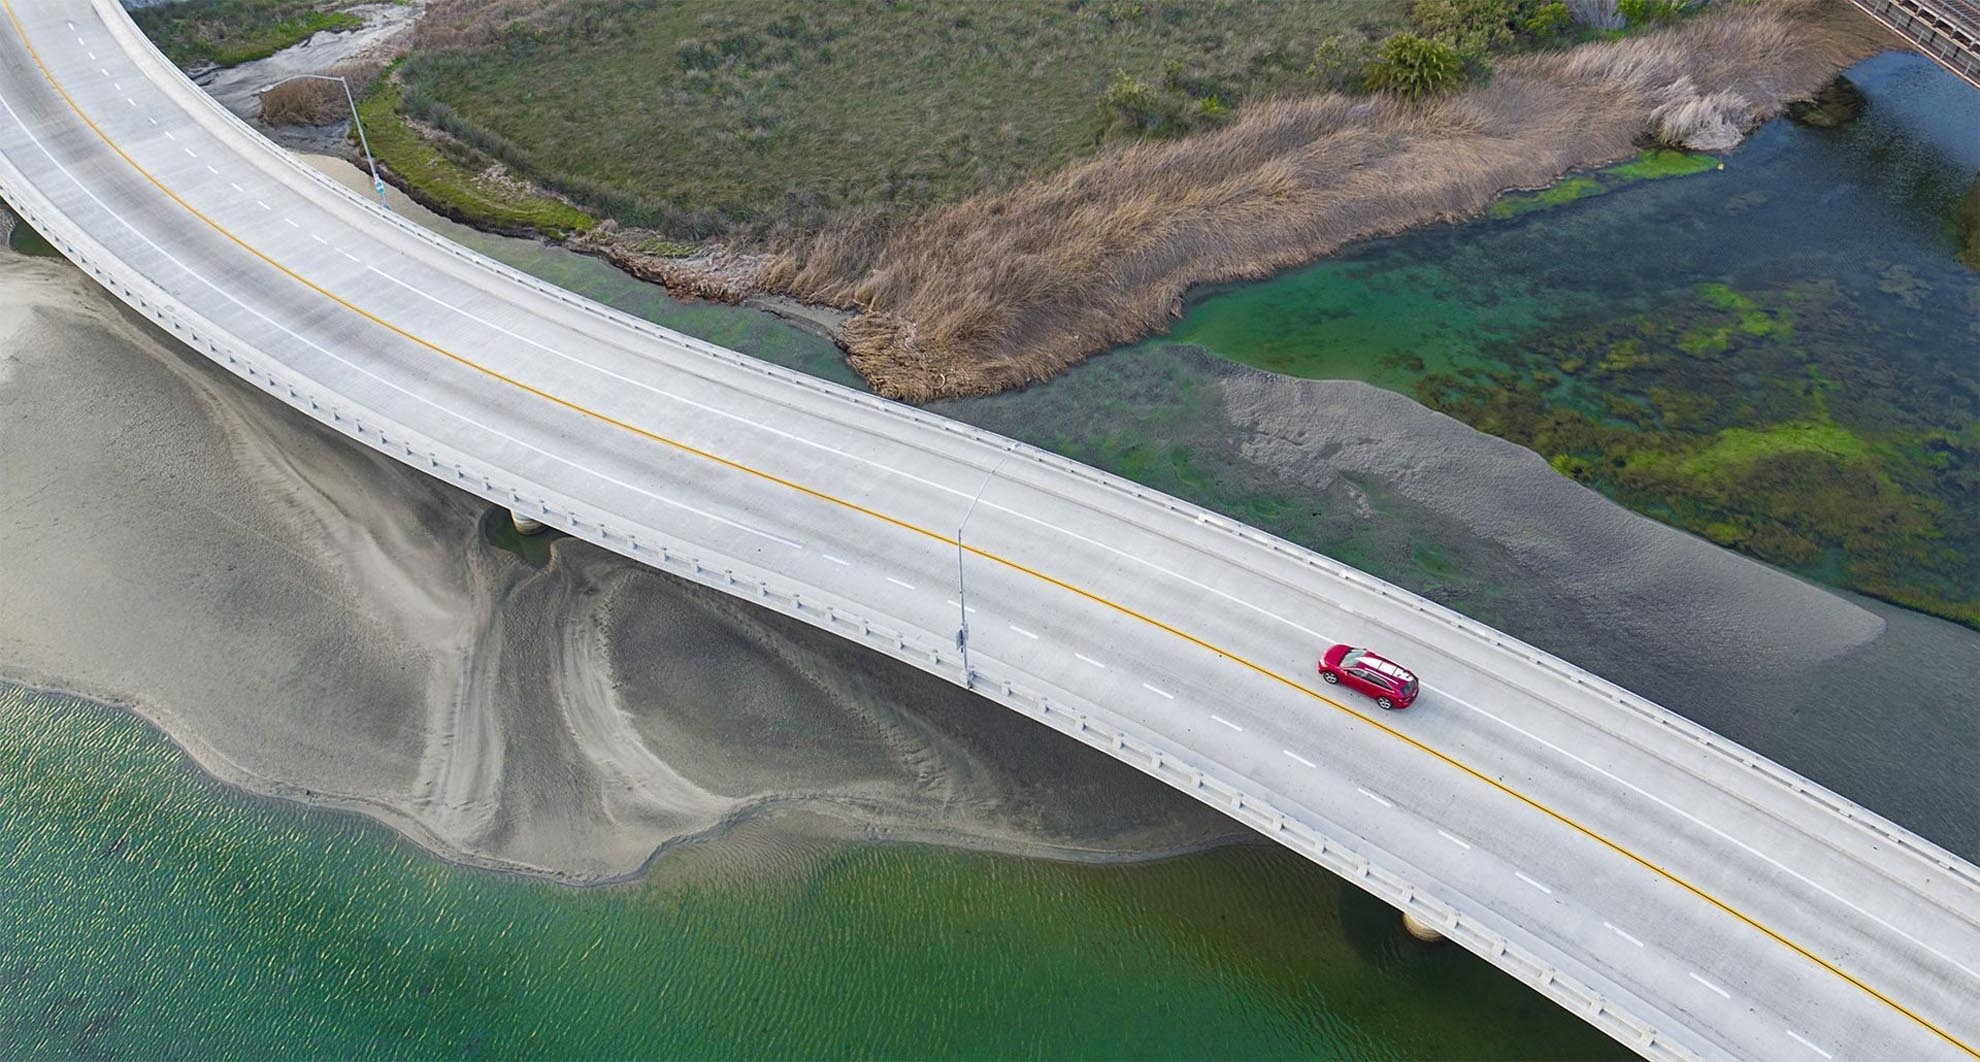 Photograph of birds eye view of SUV with surf board on roof crossing marsh bridge taken with a drone